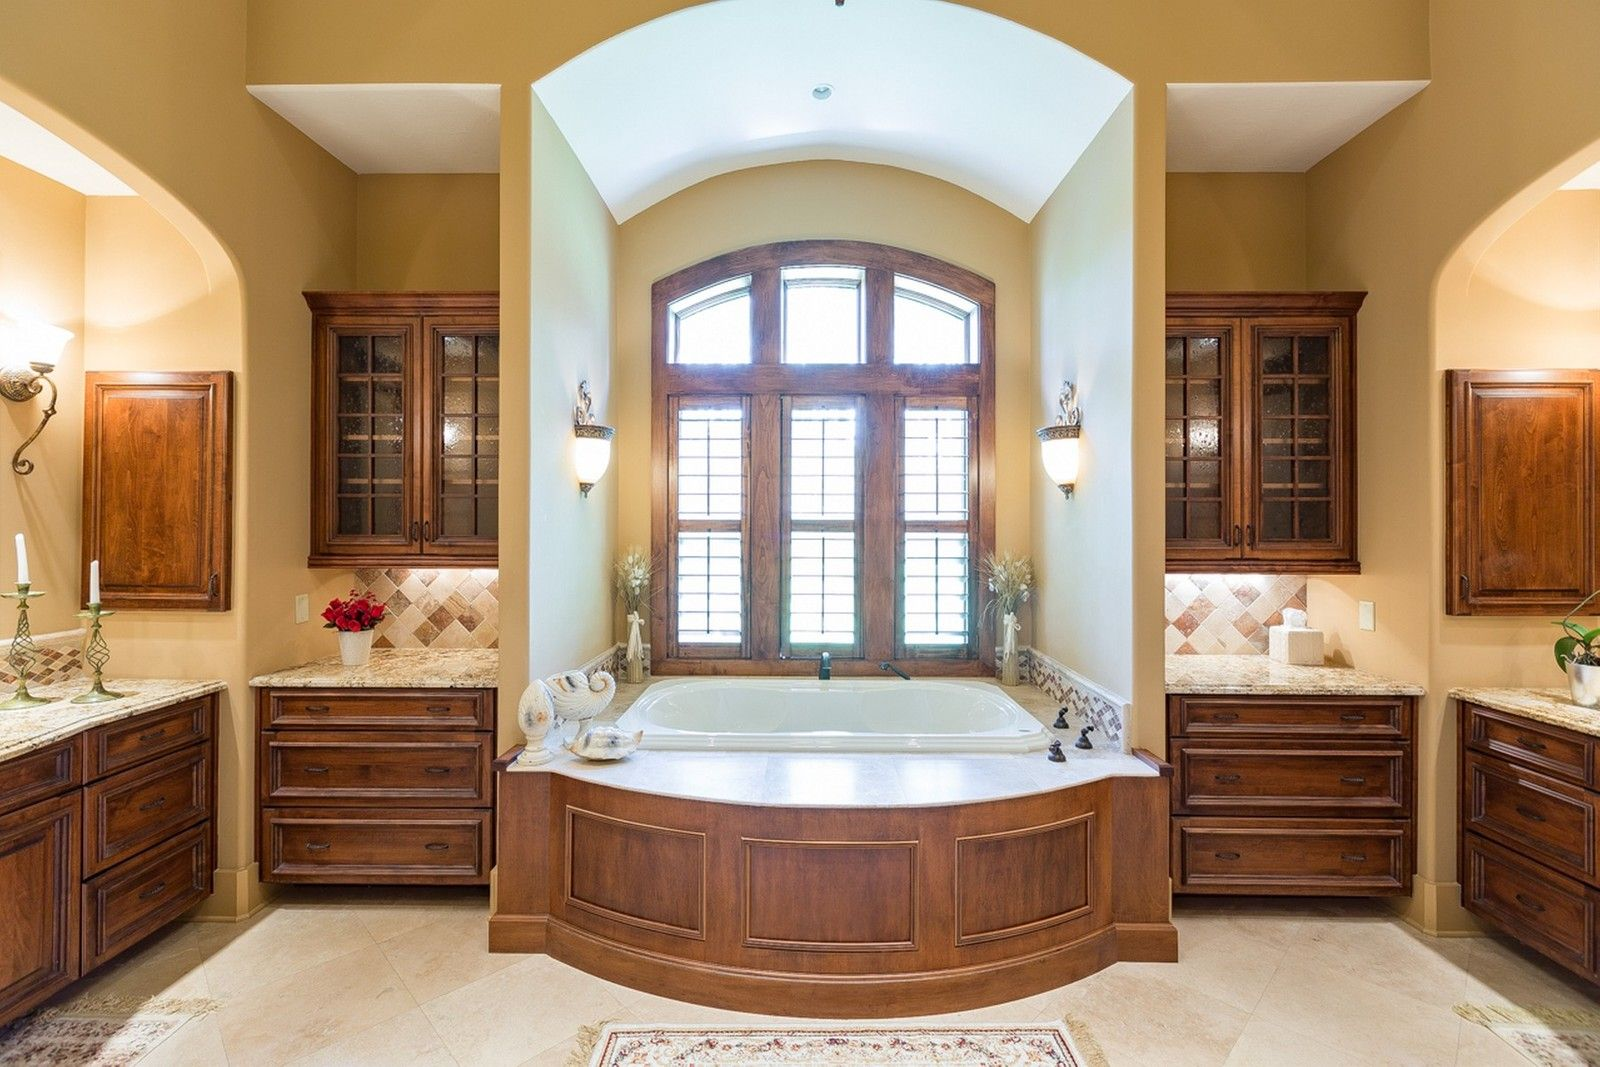 417 Triple Crown Lane St Johns Florida United States Luxury Home For Sale In 2020 Equestrian Estate Luxury Homes Find Homes For Sale